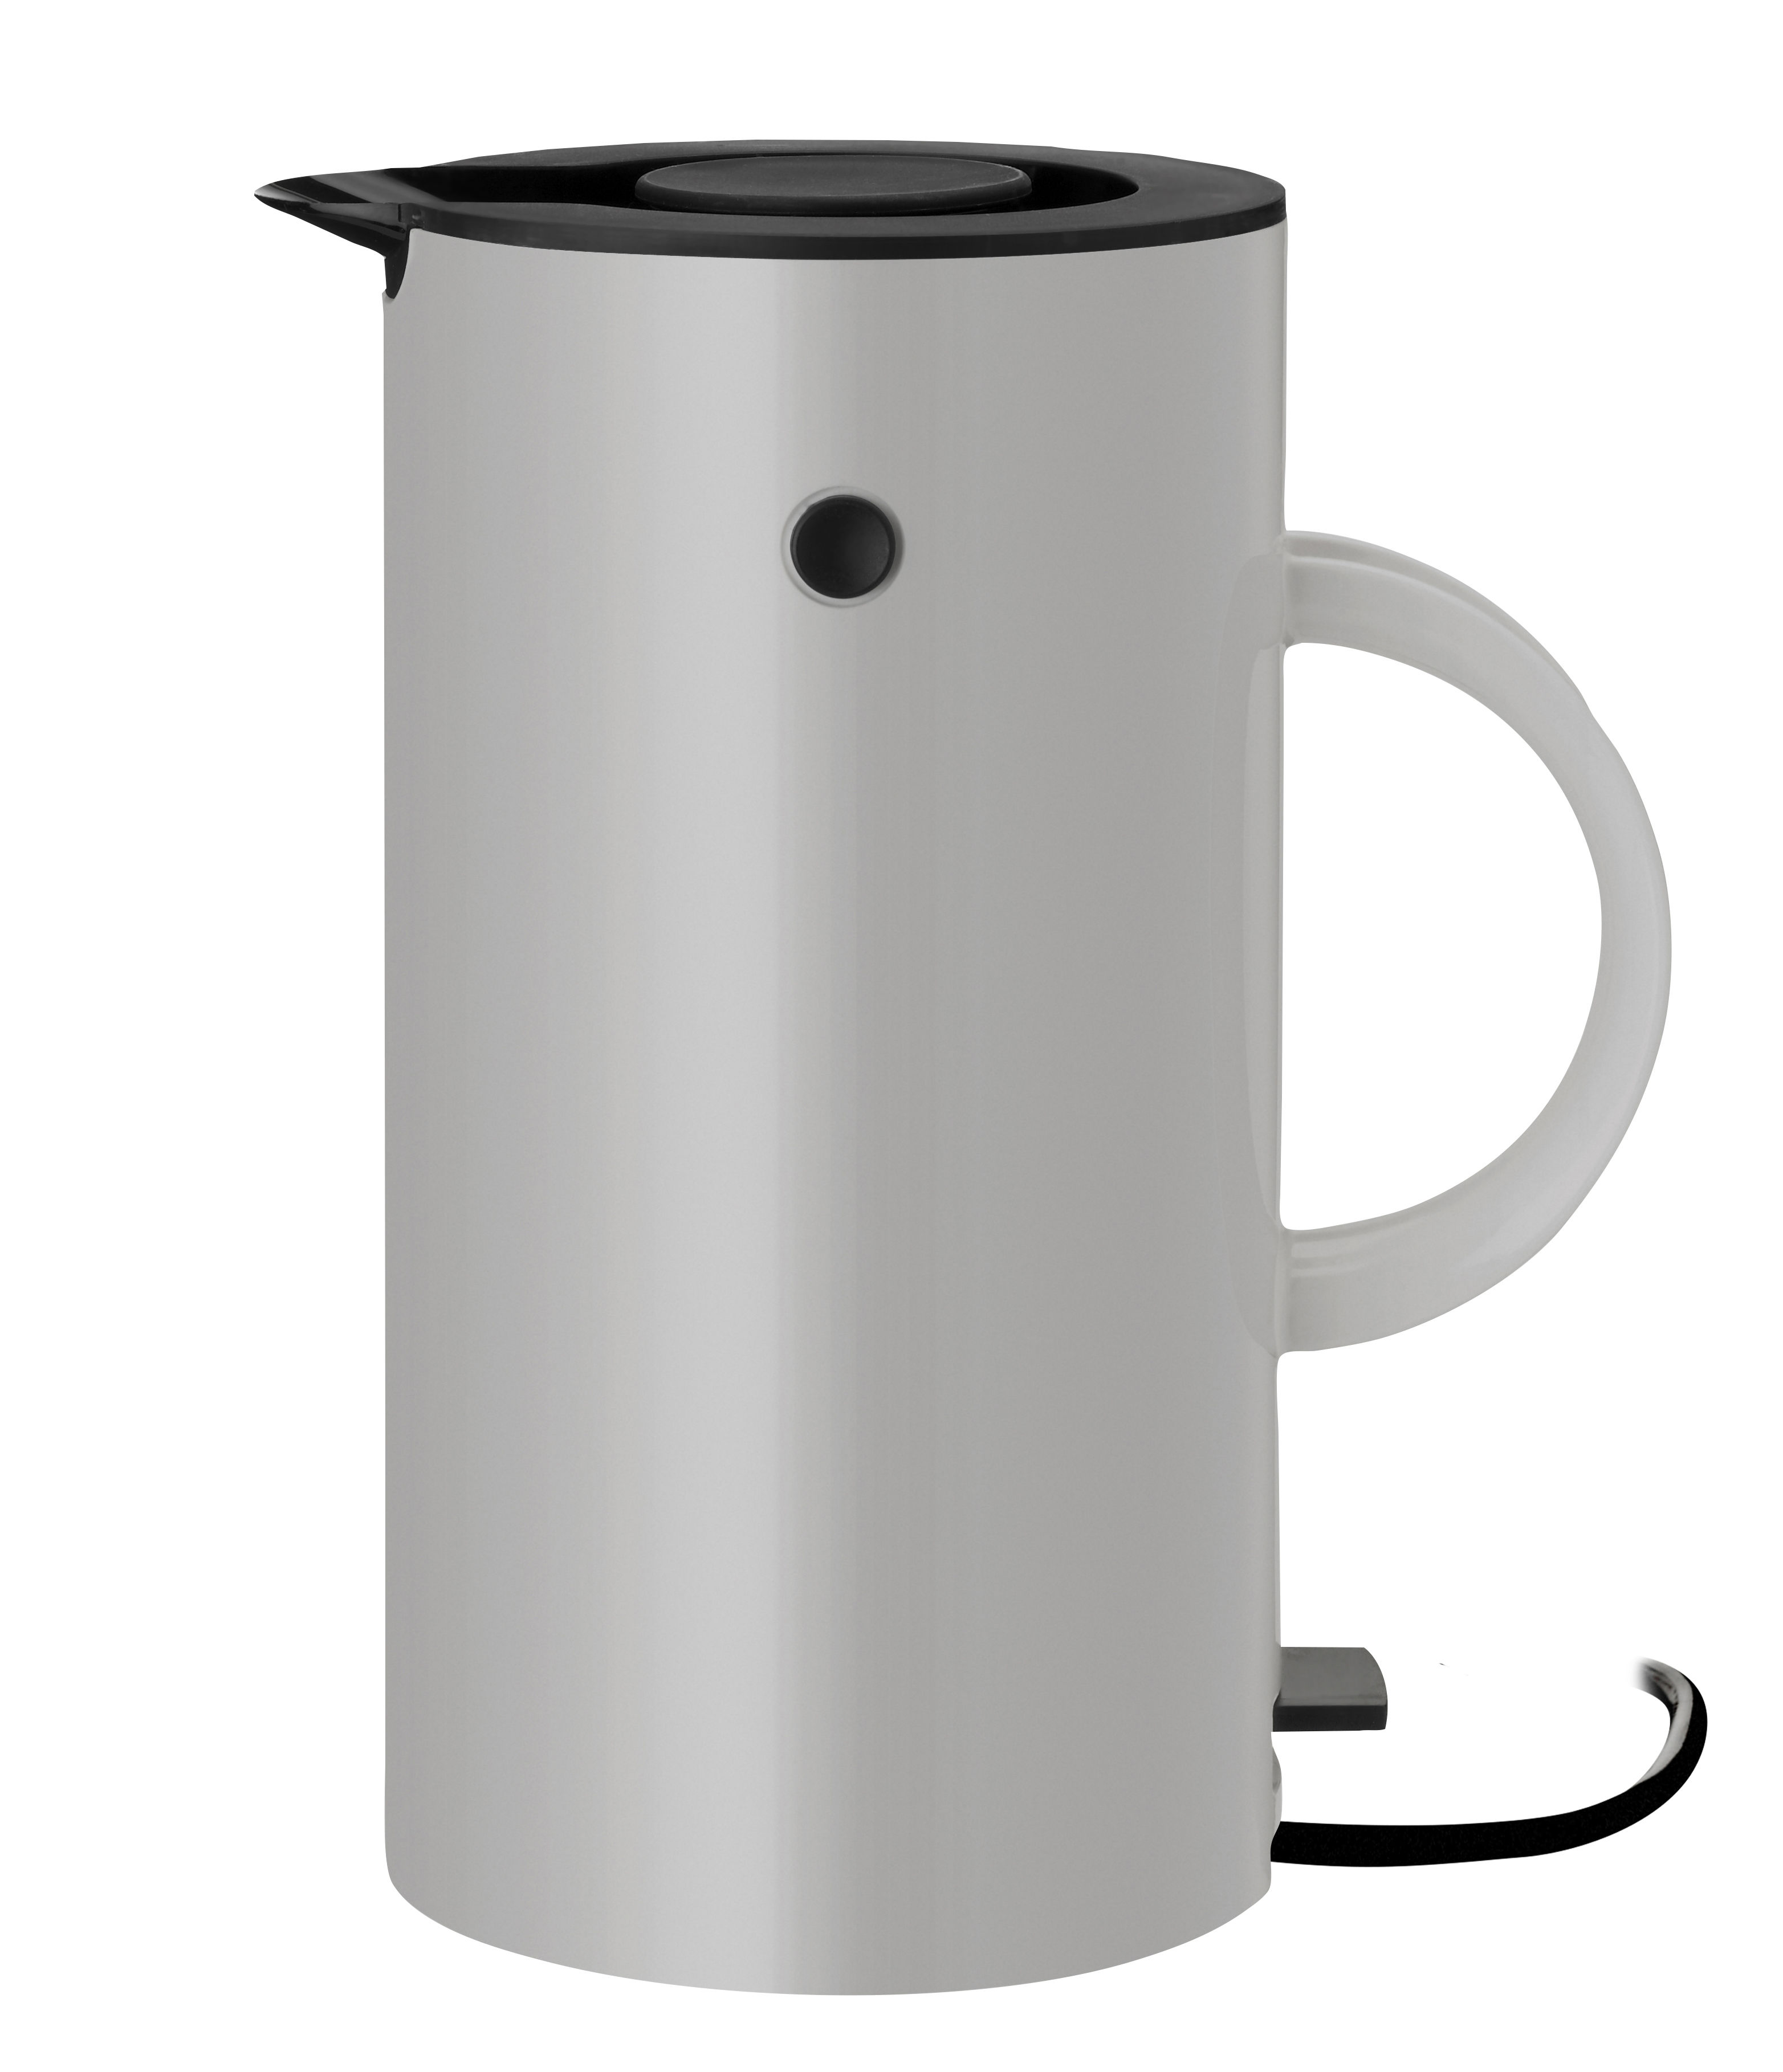 Kitchenware - Kettles & Teapots - EM77 Electric kettle - / 1.5 L by Stelton - Light grey - ABS plastic